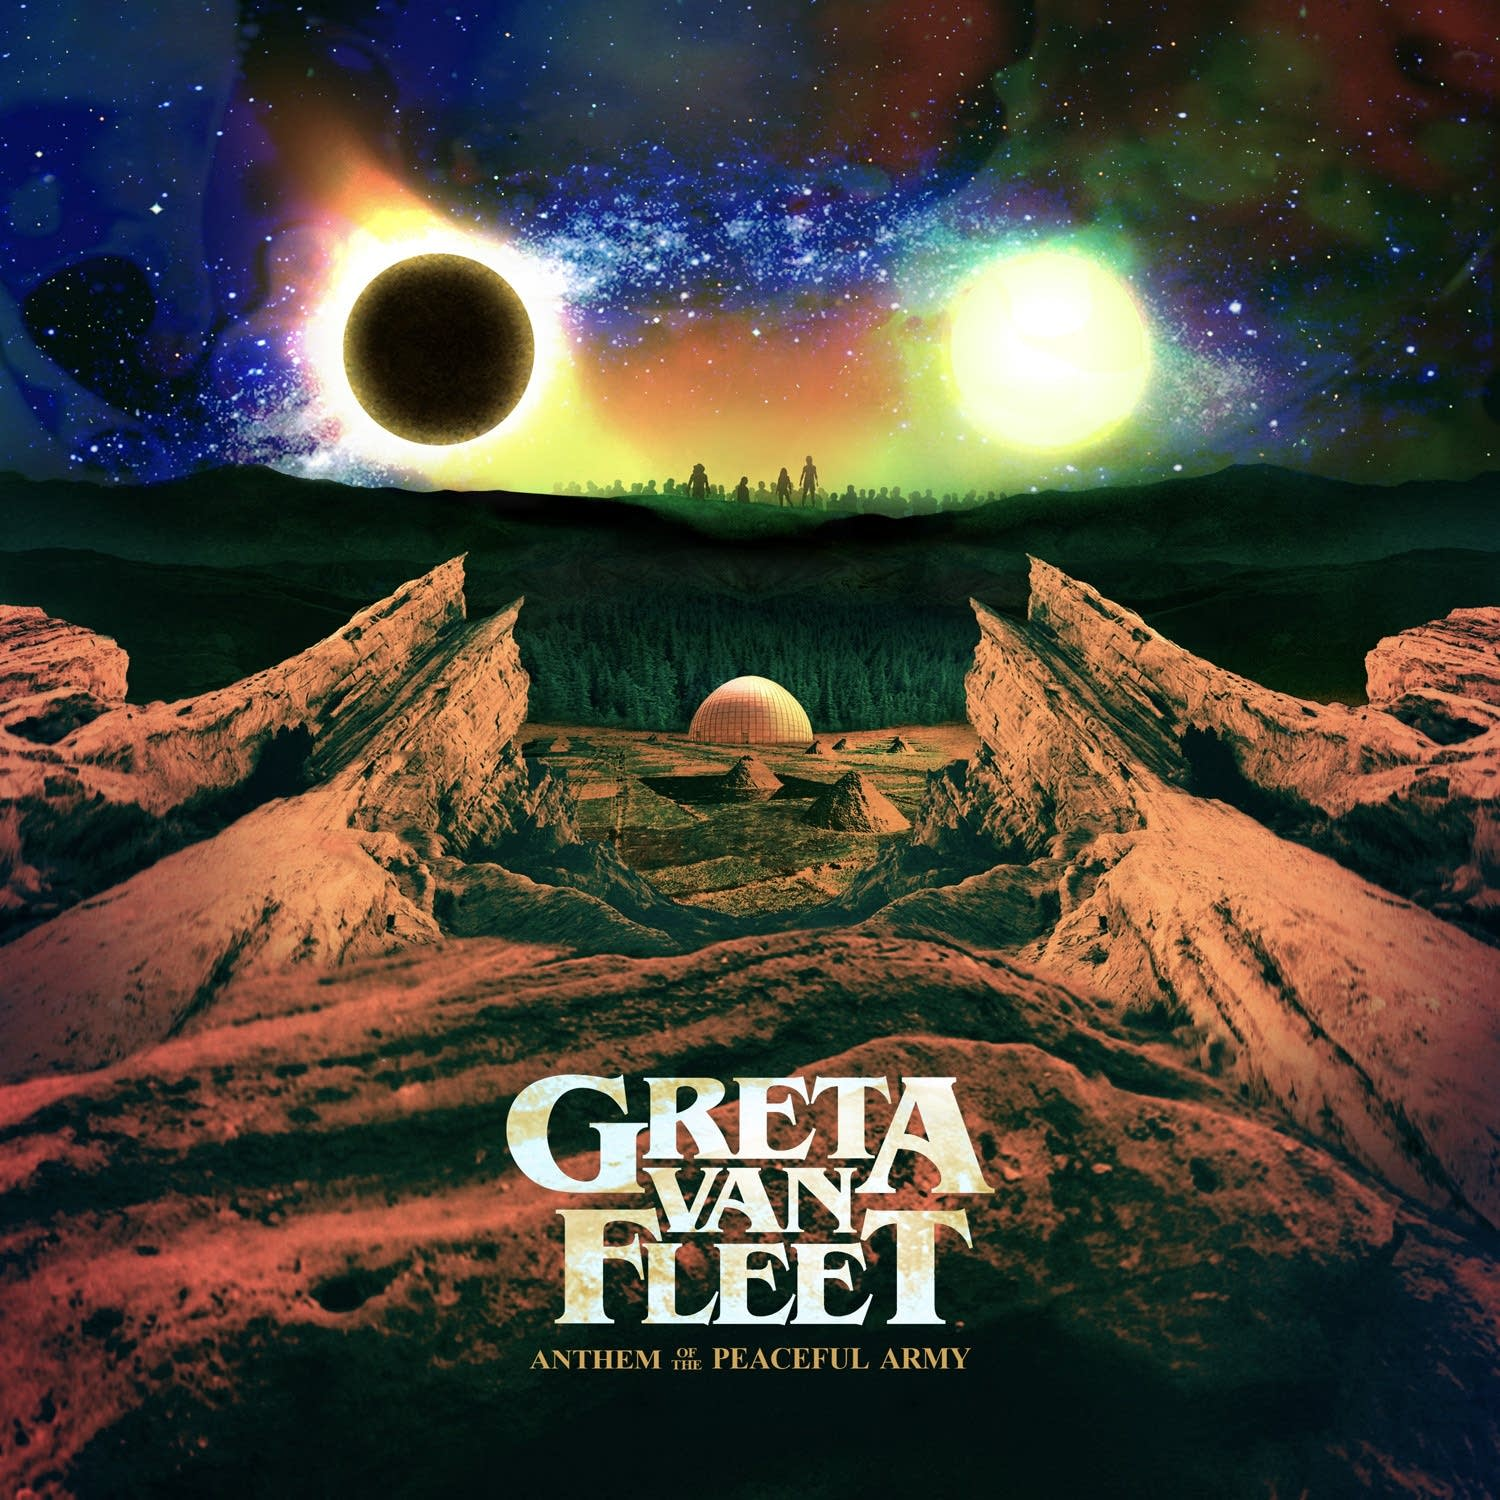 Greta Van Fleet, 'Anthem of the Peaceful Army'